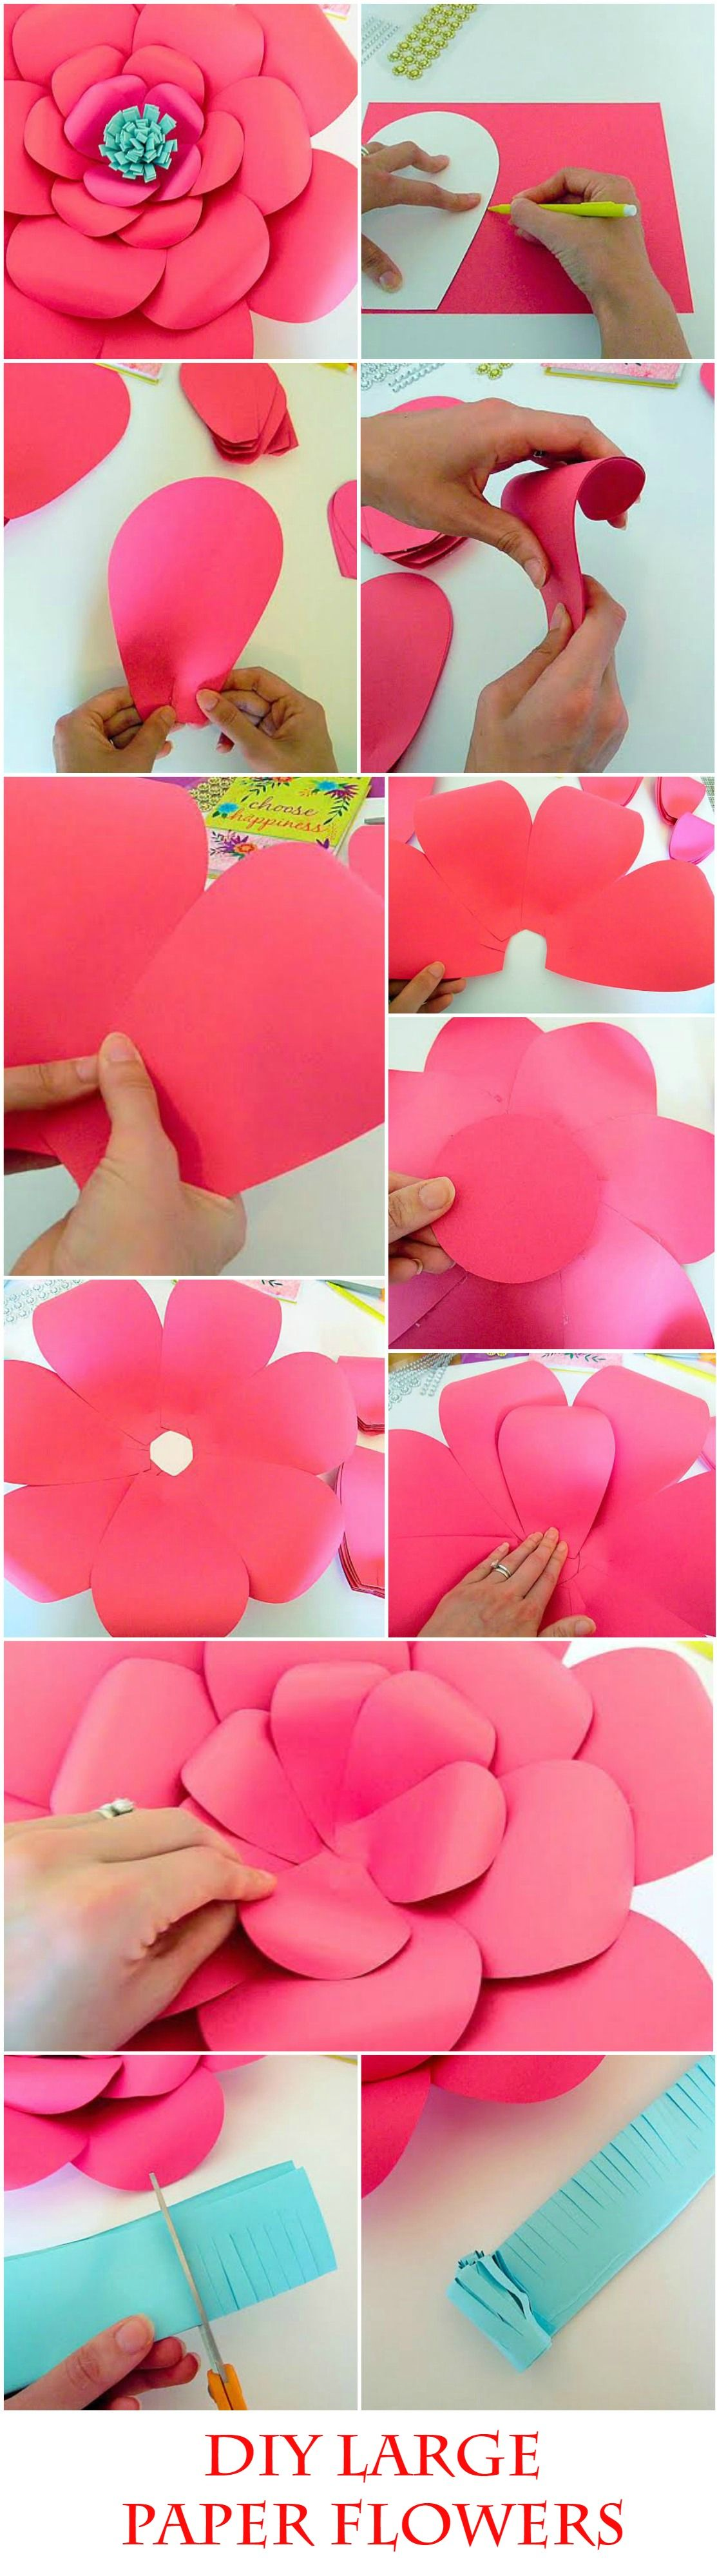 Wedding Craft Ideas To Love Diy Giant Paper Flower Templates